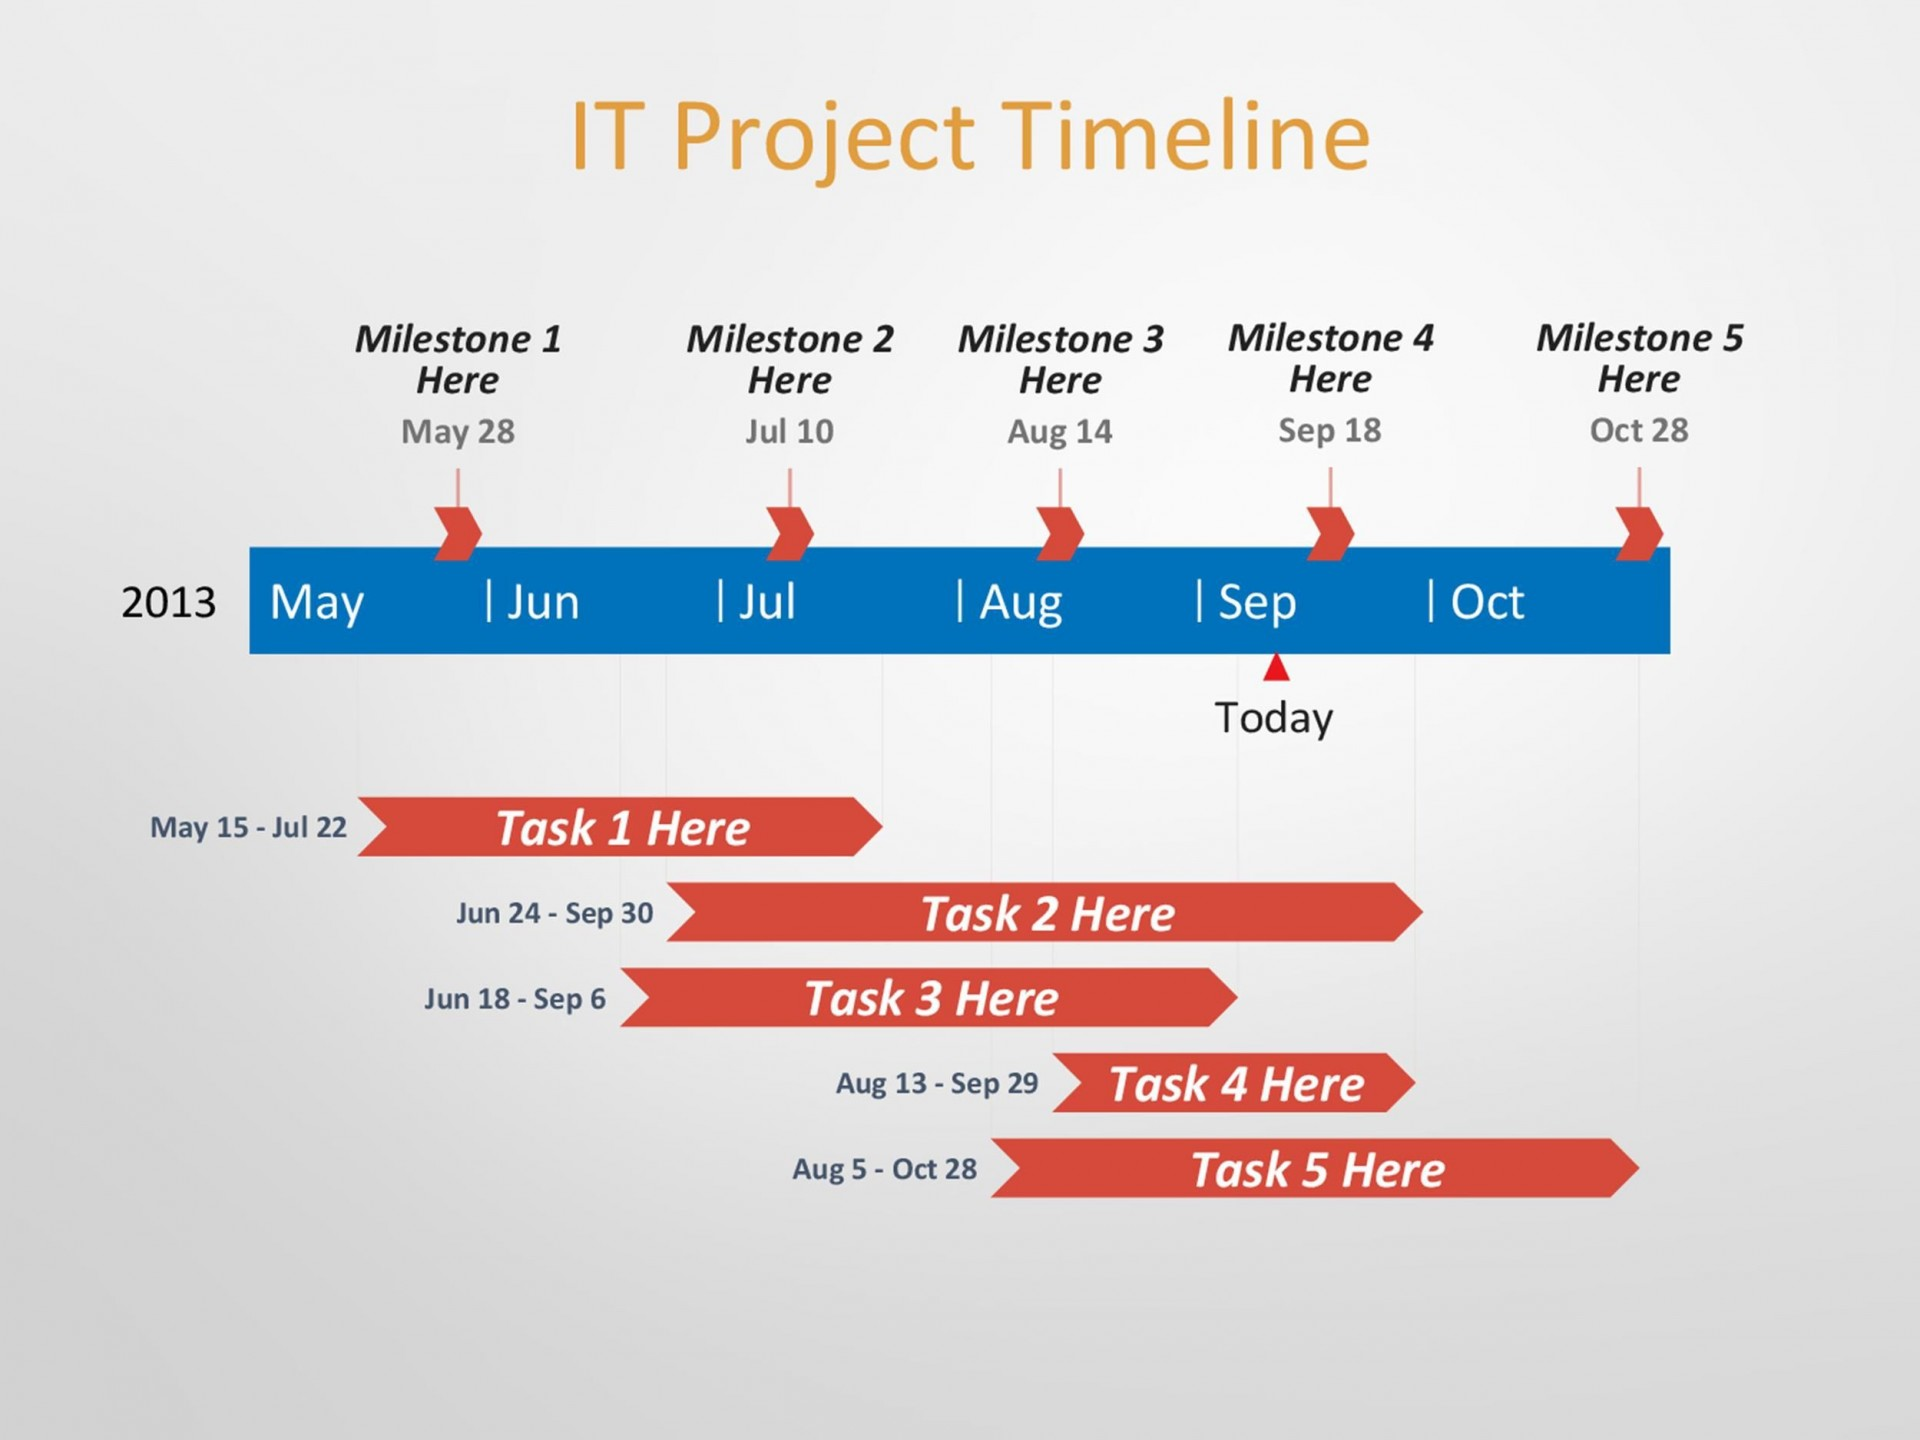 009 Magnificent Timeline Template For Word 2016 Concept 1920